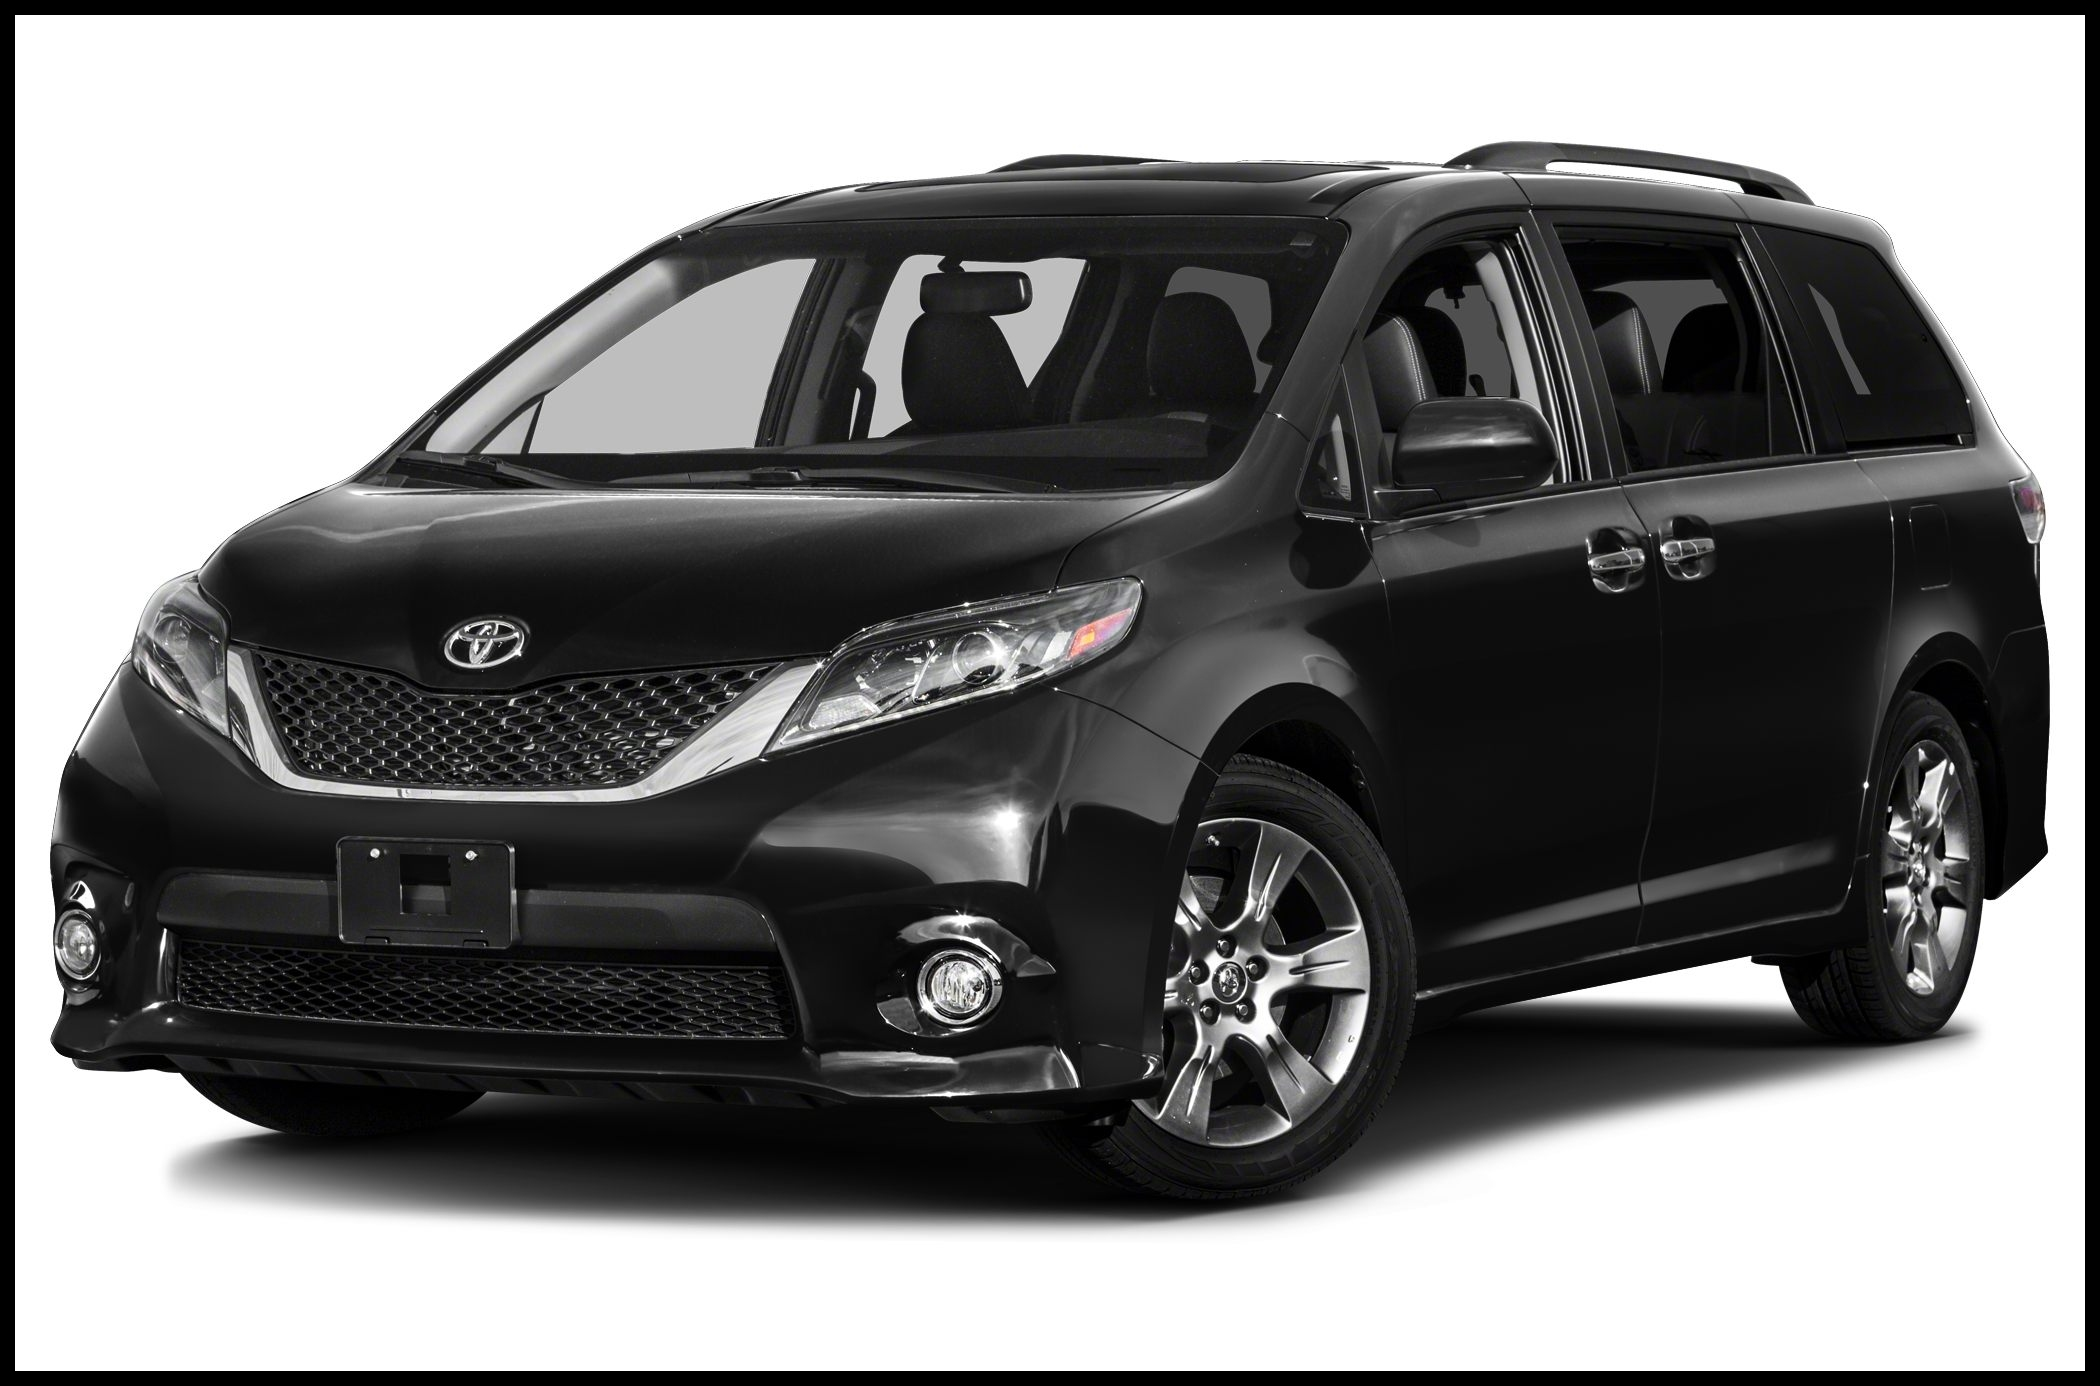 2017 Toyota Sienna SE Premium 8 Passenger 4dr Front wheel Drive Passenger Van Specs and Prices